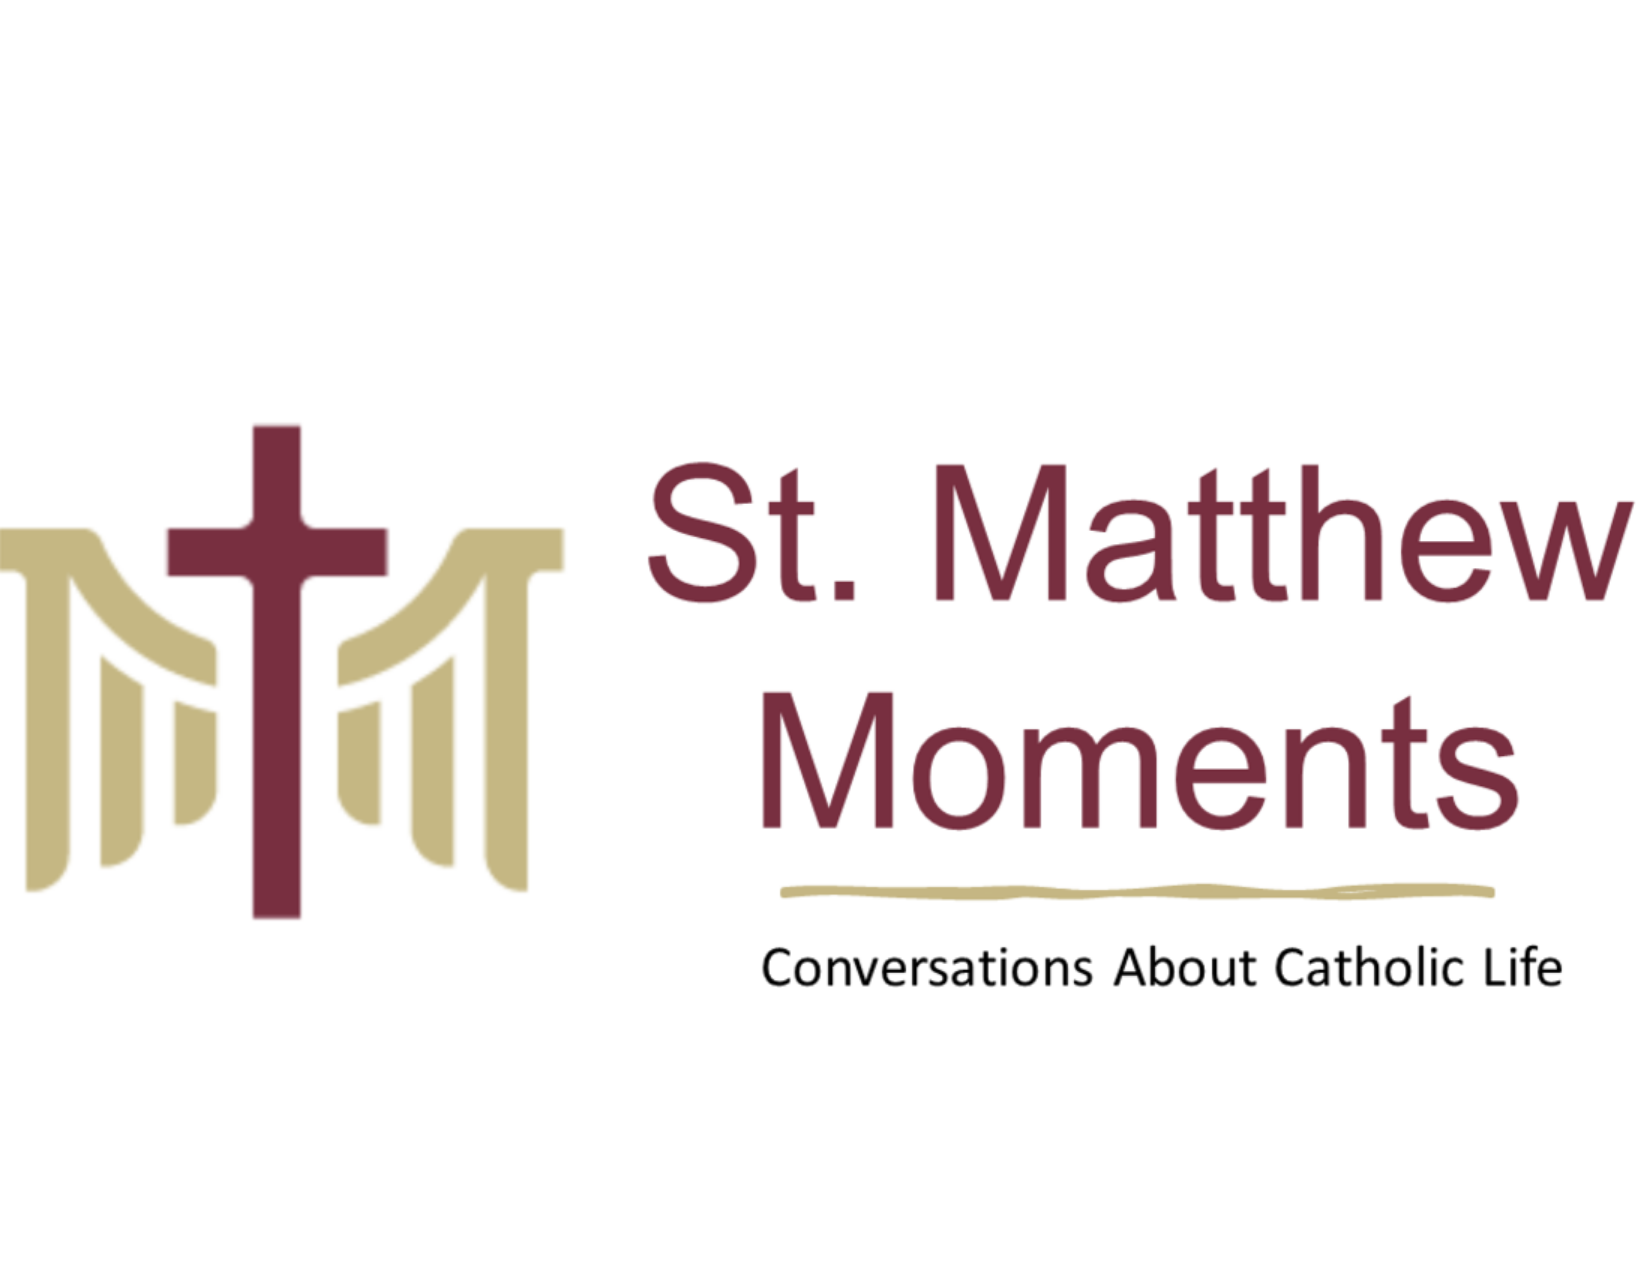 St. Matthew Moments is a podcast where the St. Matthew community comes together to discuss our faith, our families, and our lives. We hope you'll listen along on this journey to grow infaith, grow closer to Christ and your St. Matthew community.